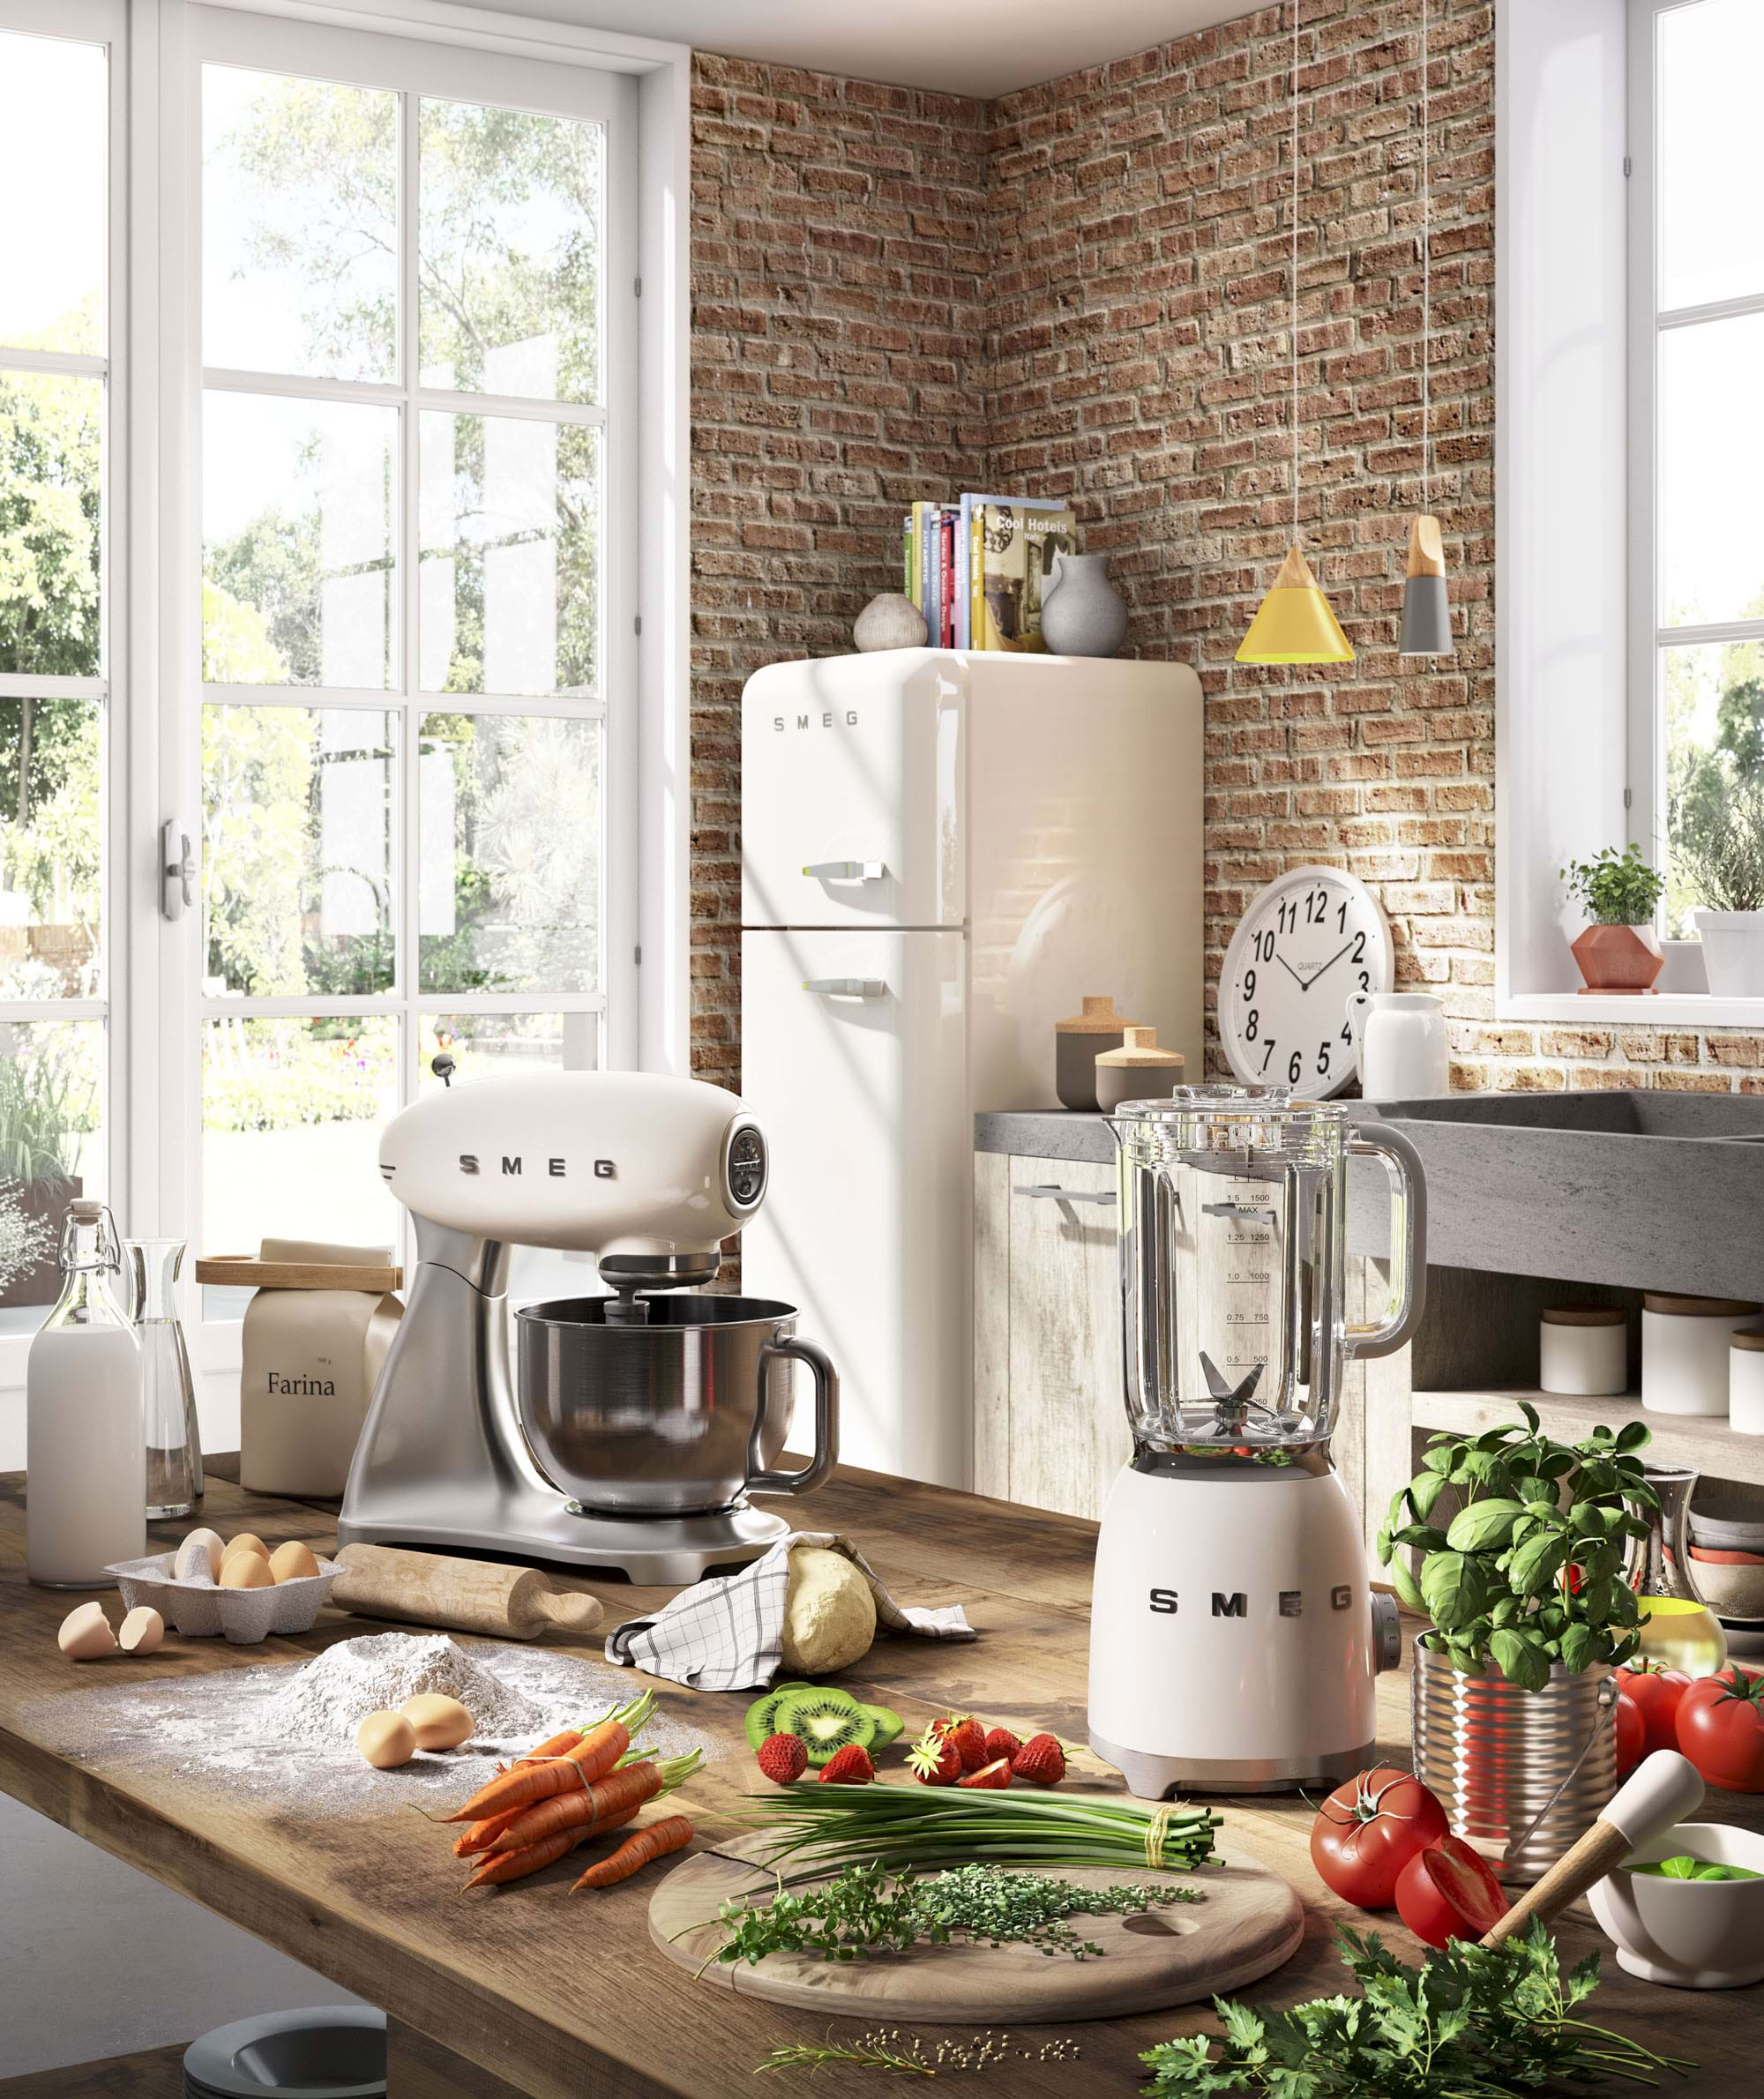 Smeg Appliances